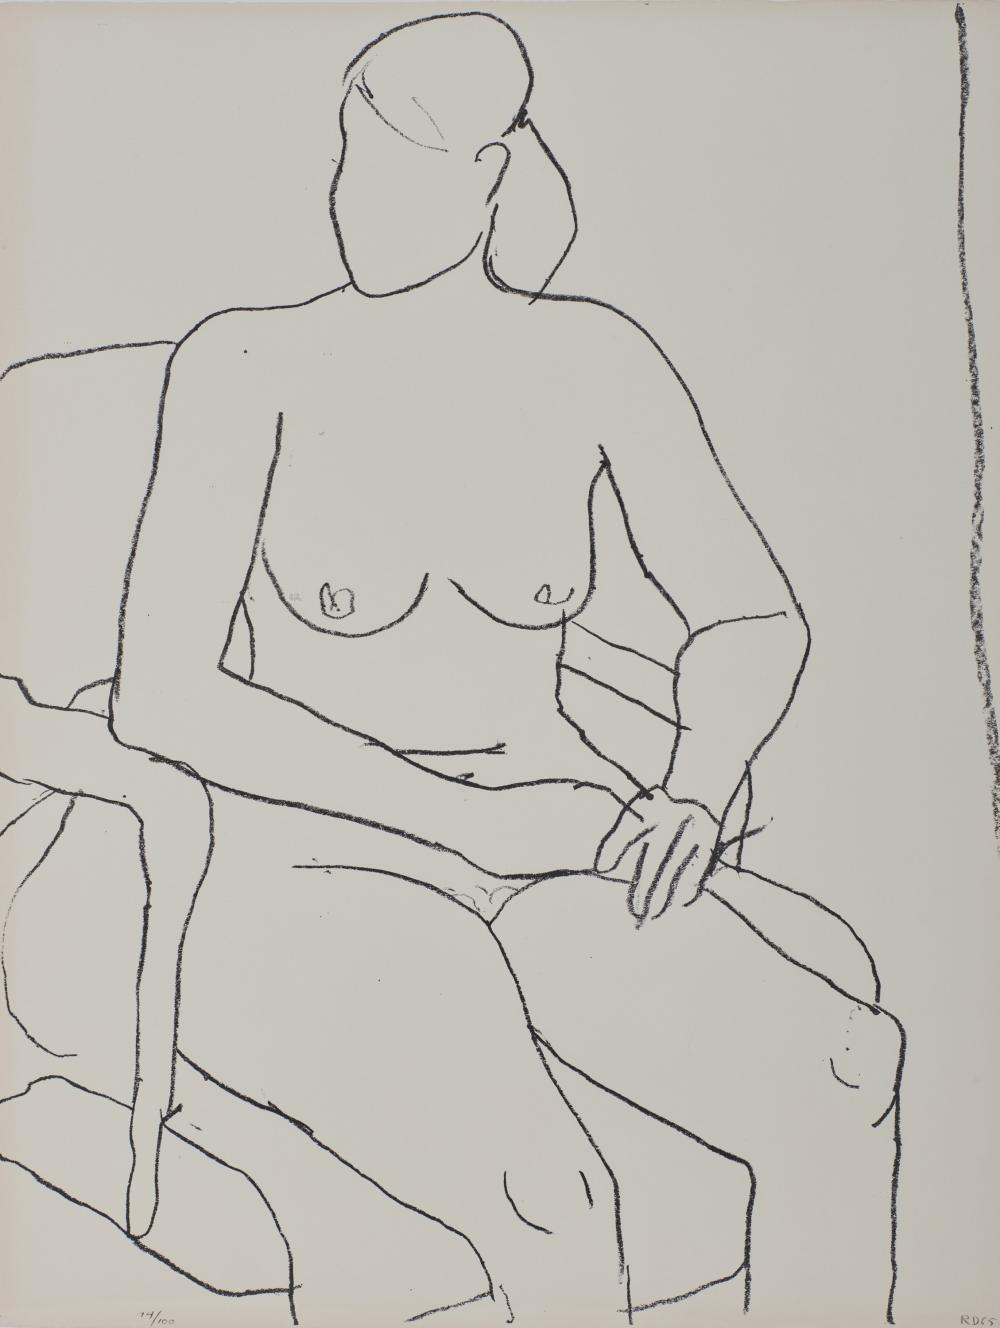 RICHARD DIEBENKORN, (American, 1922-1993), Seated Nude, 1965, lithograph, 26 1/4 x 20 1/8 in., frame: 29 x 23 in.